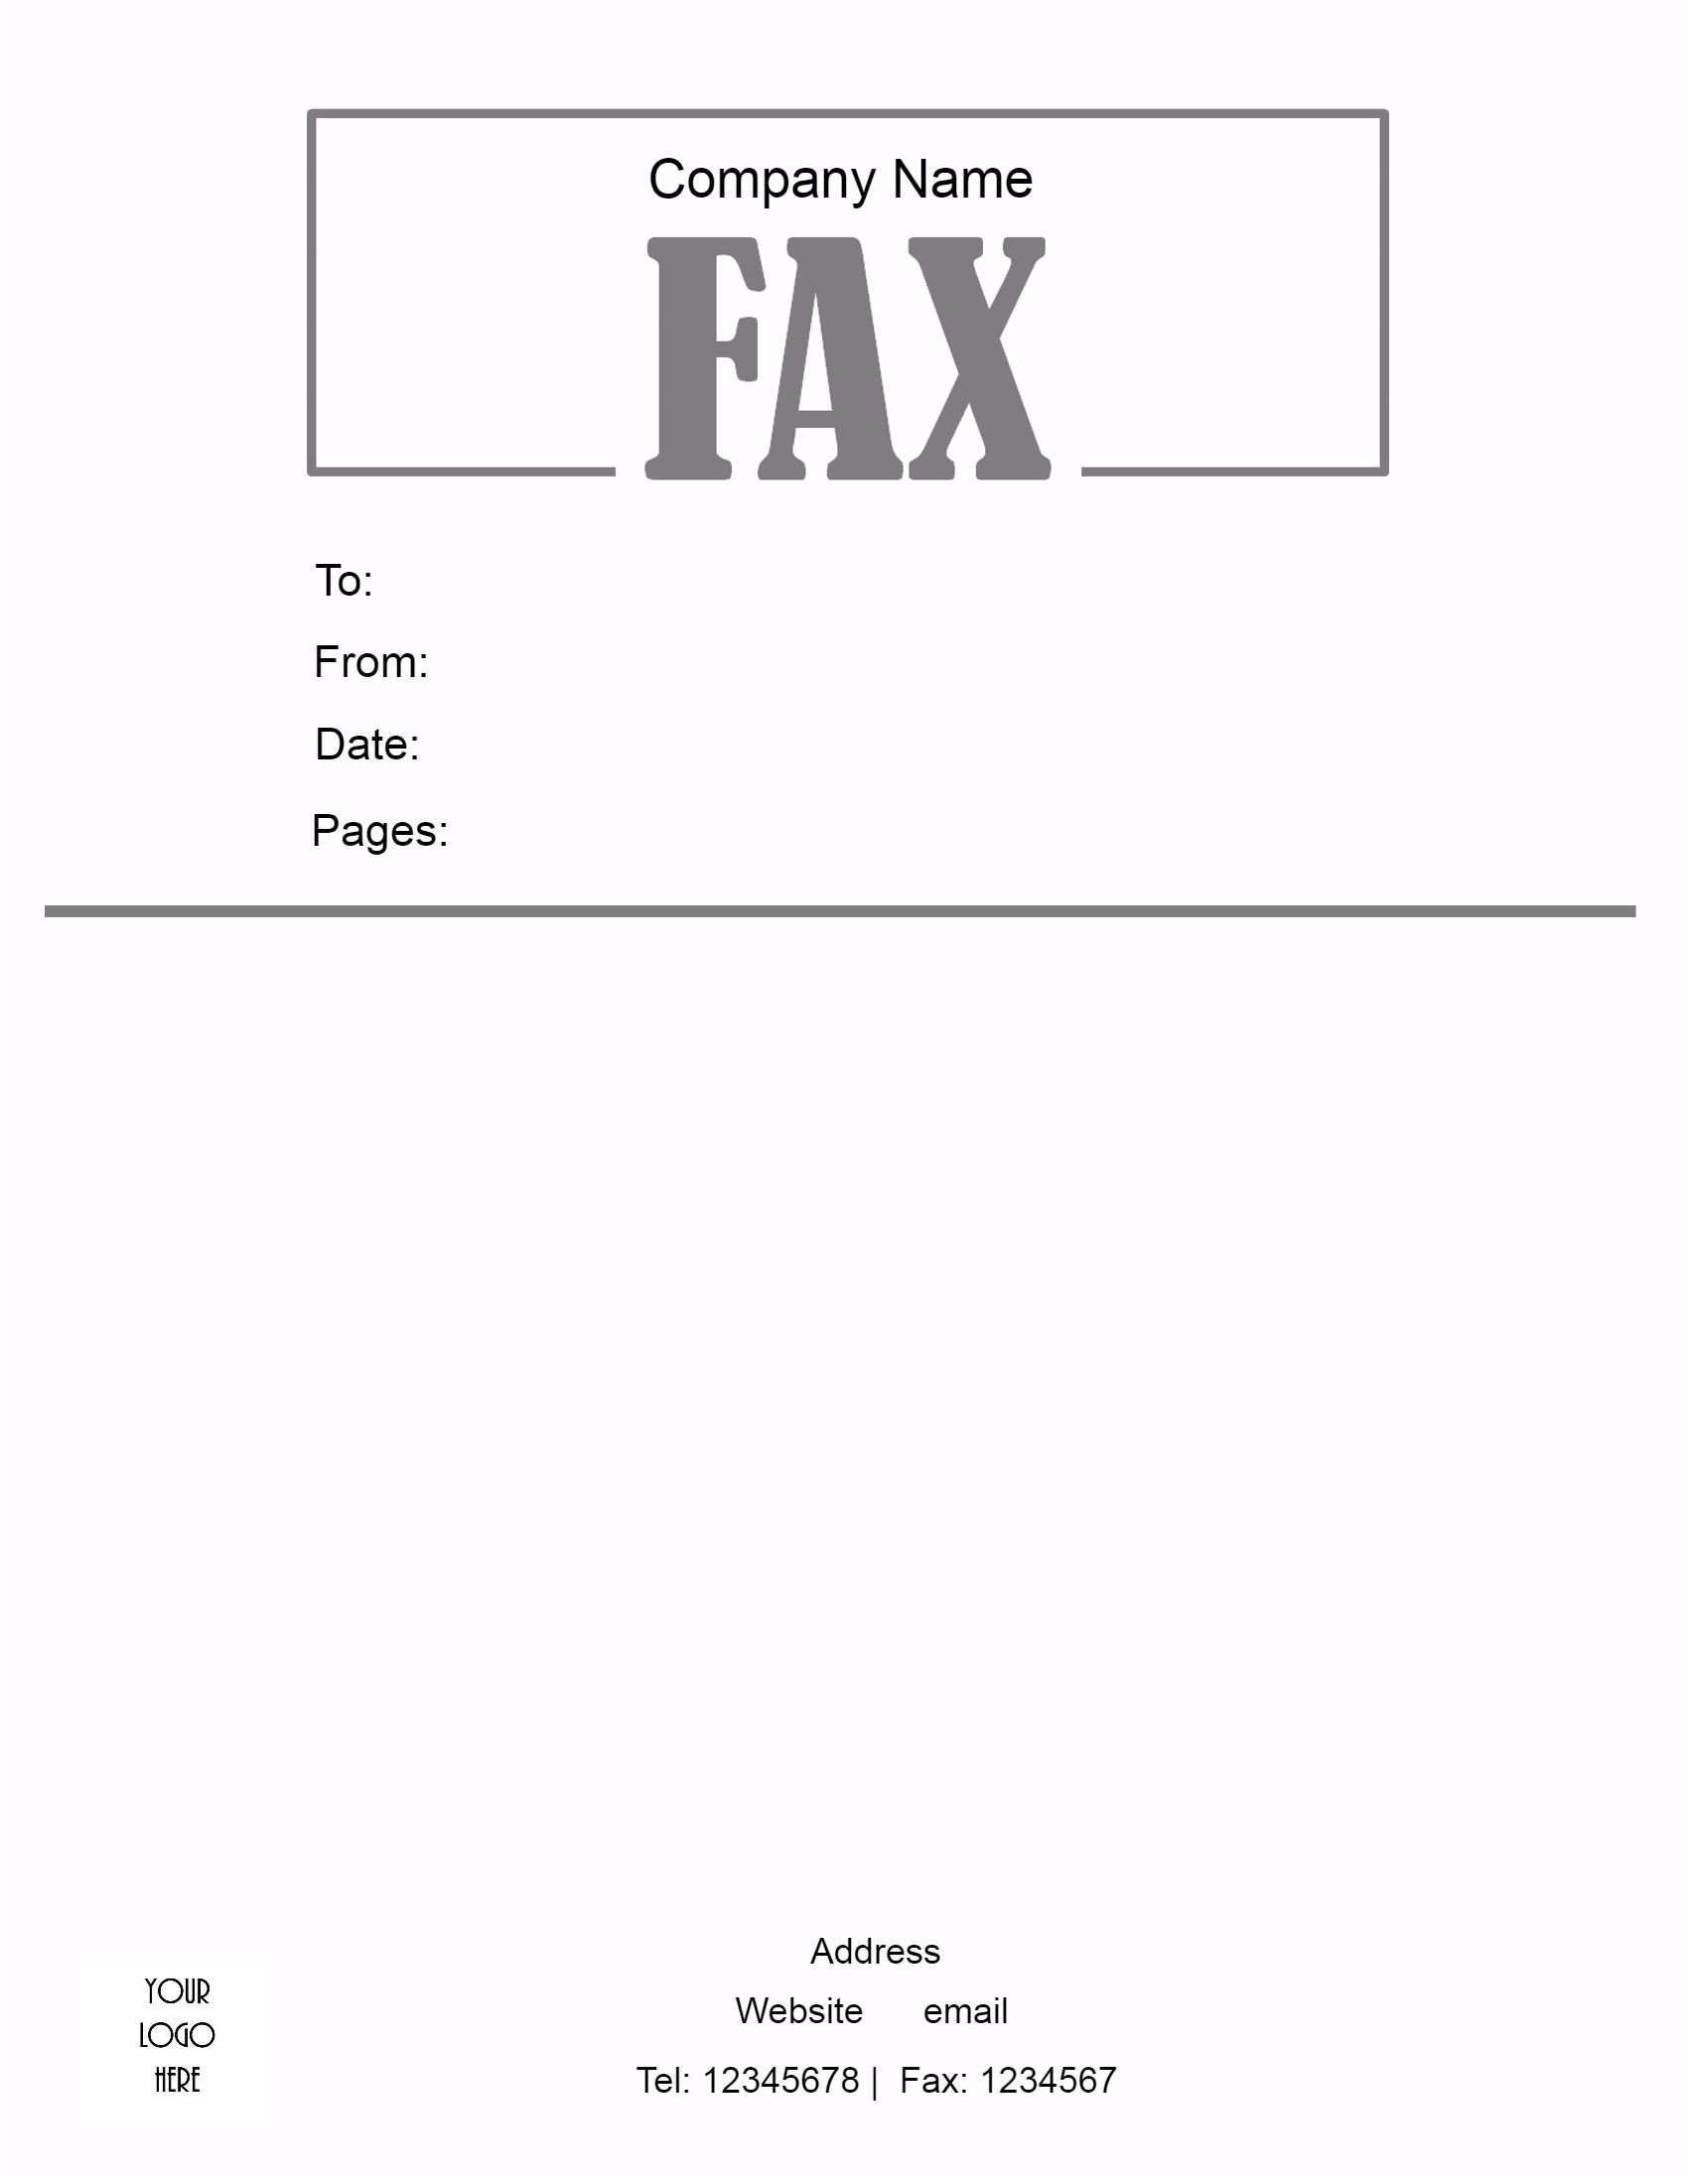 Open Office Fax Template from www.101letterheadtemplates.com